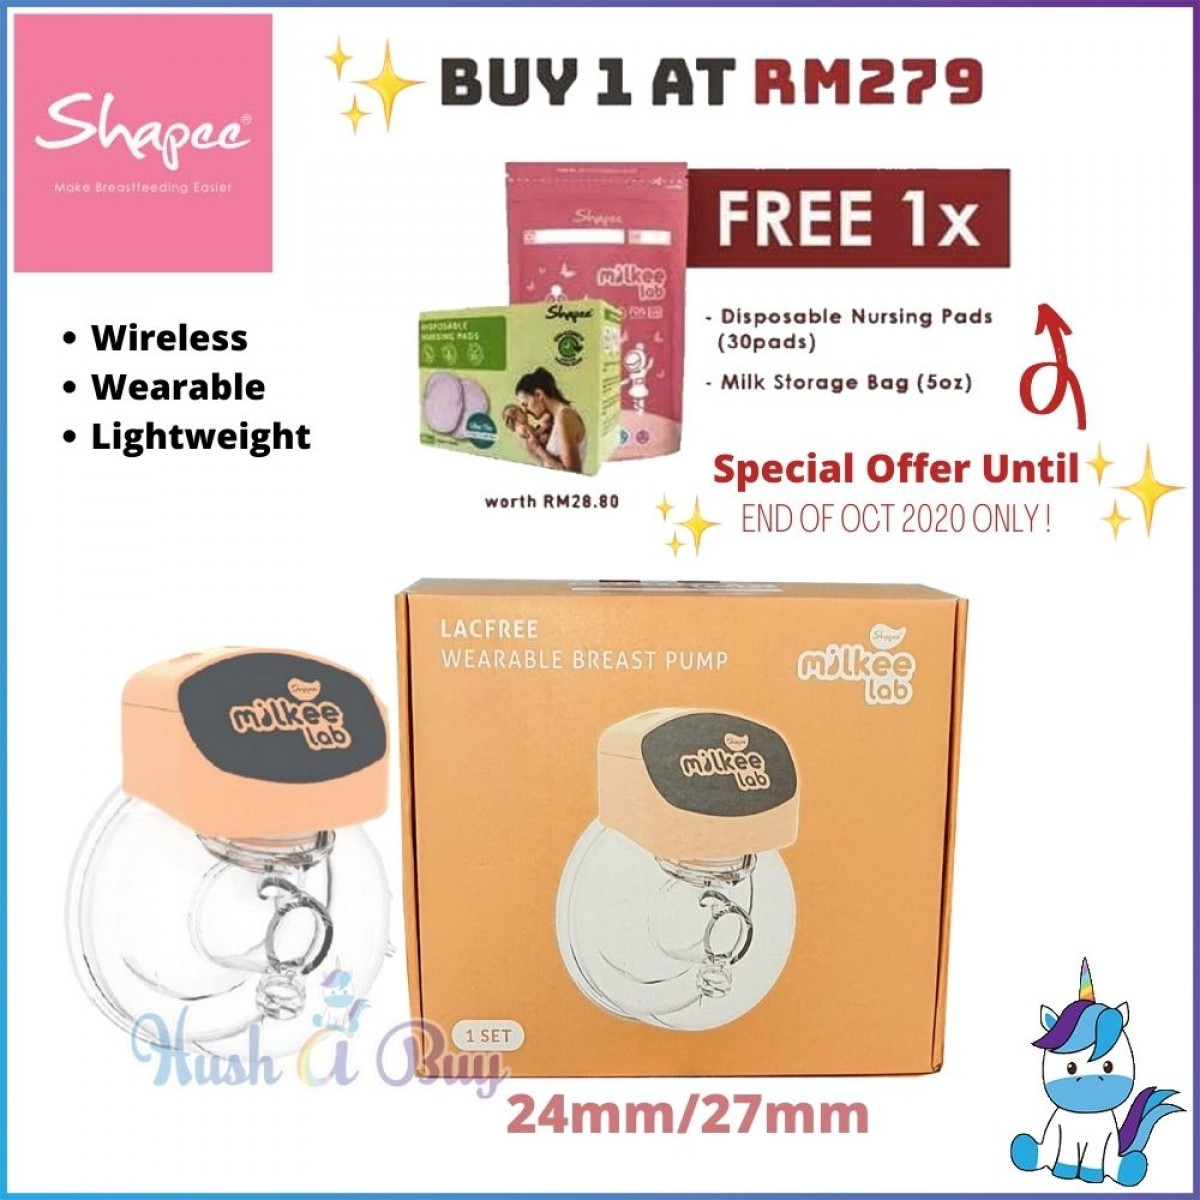 Shapee Milkee Lab Lacfree Electric Wearable Breast Pump 24mm / 27mm - 1 Year Warranty